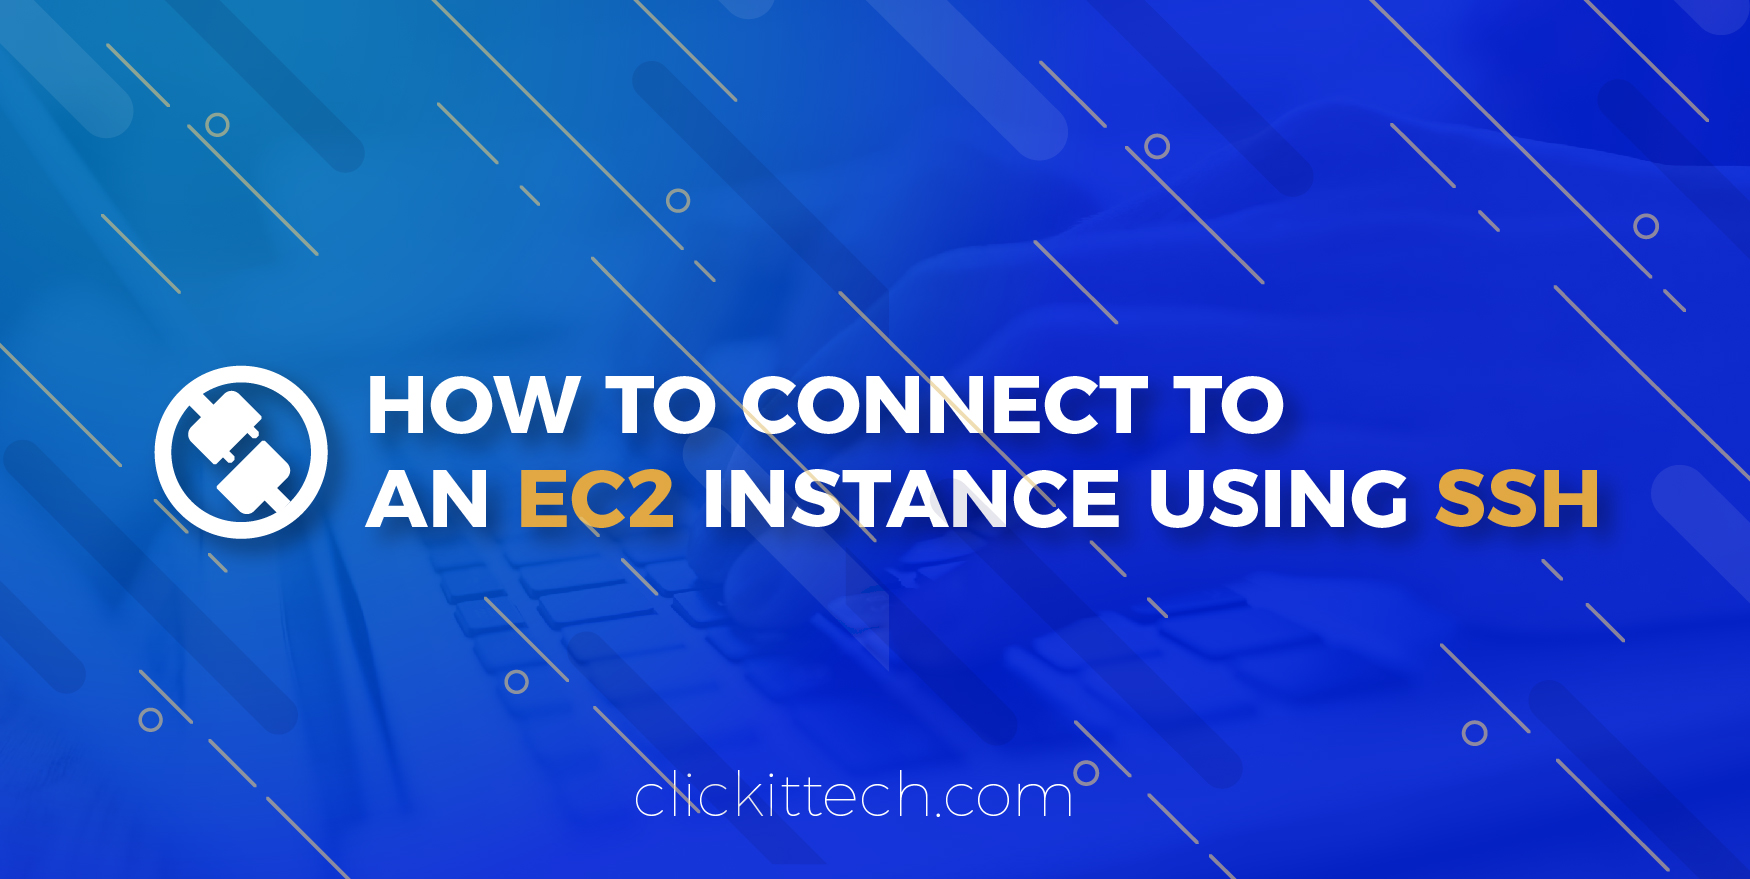 How to connect to an EC2 instance using SSH